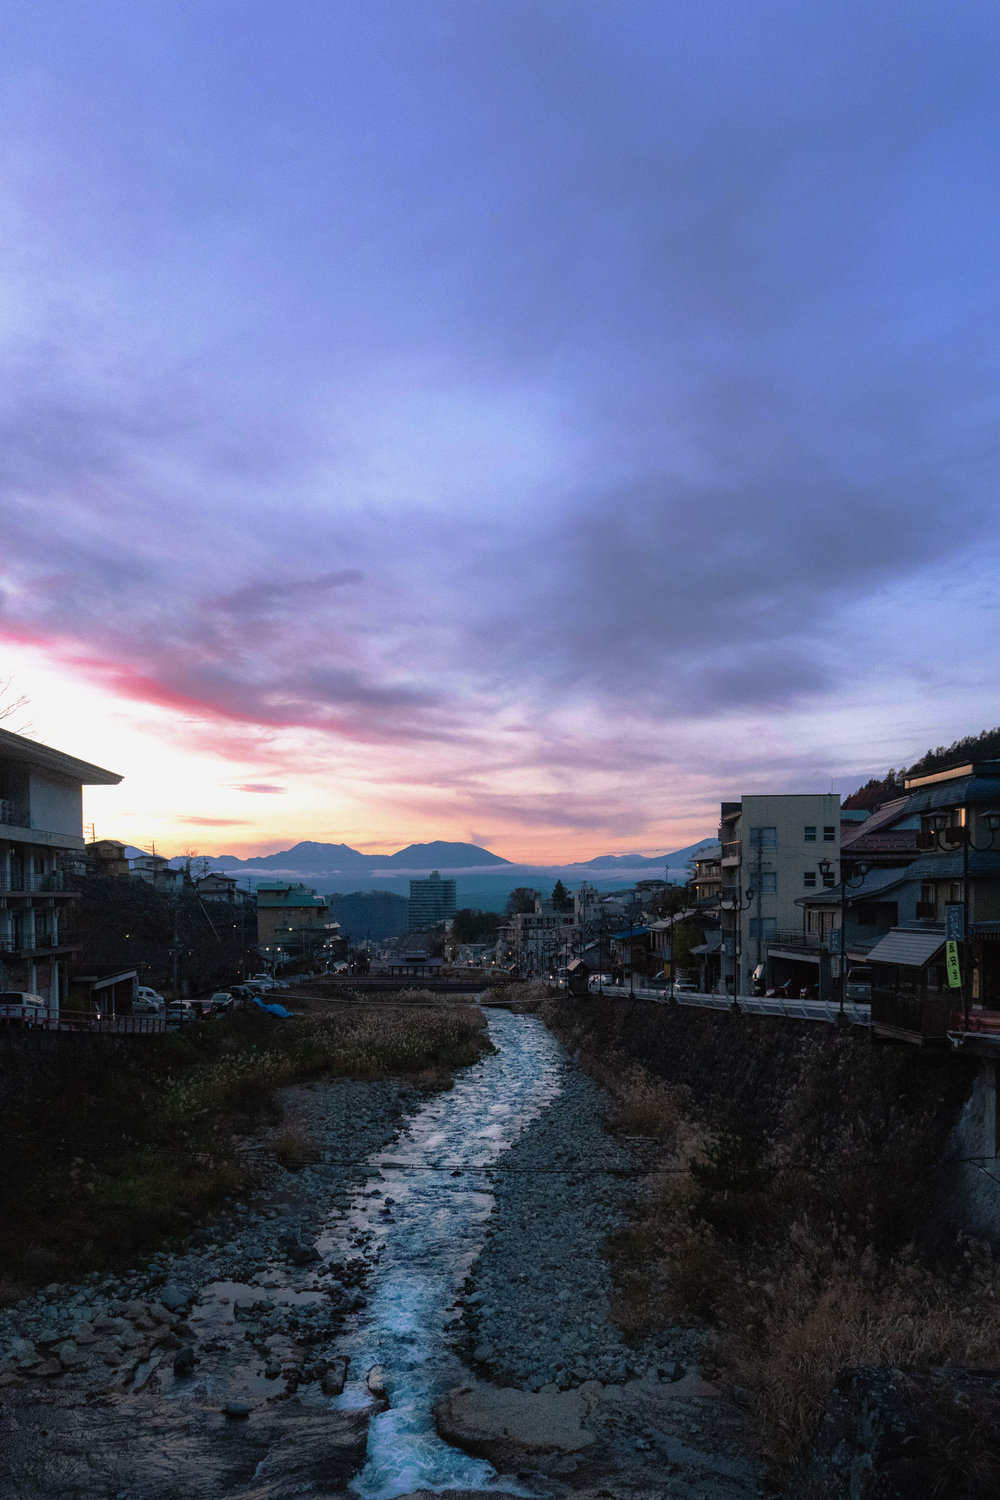 Kakuma river in Yamanouchi at sundown